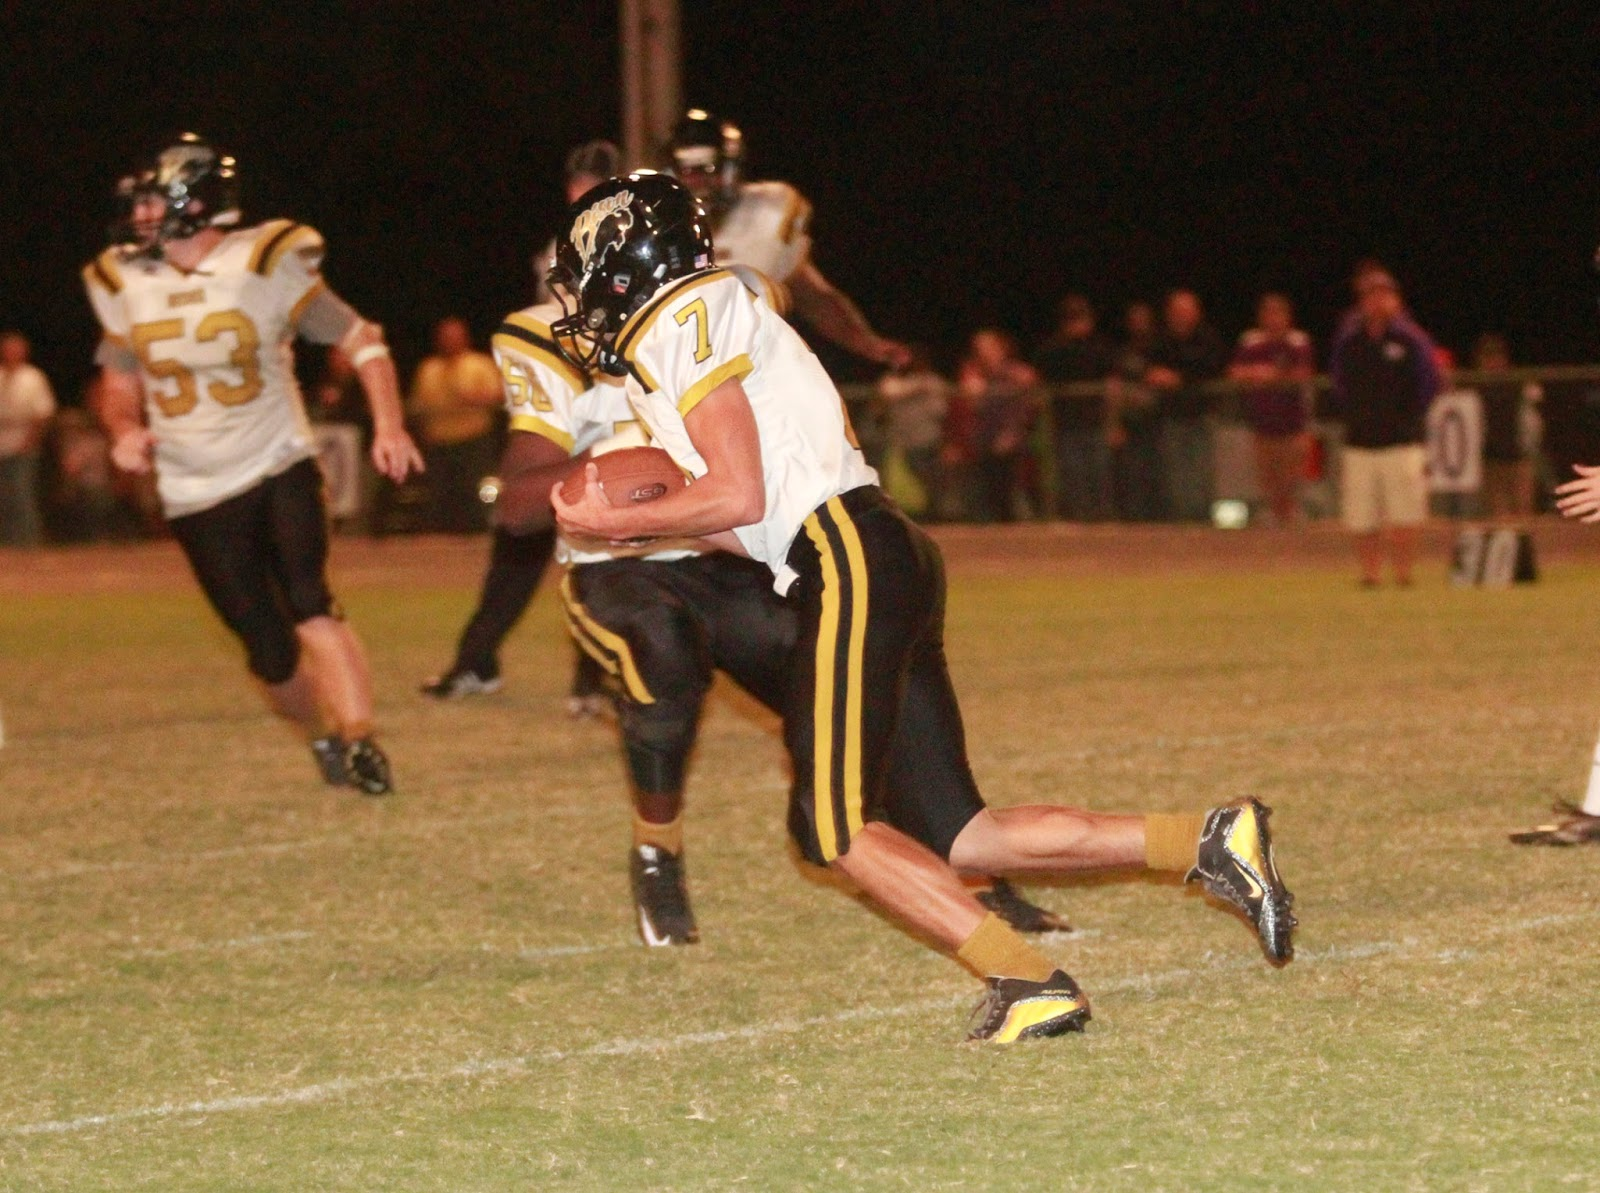 Lonoke County Sports Report: Bison swat Hornets for third win